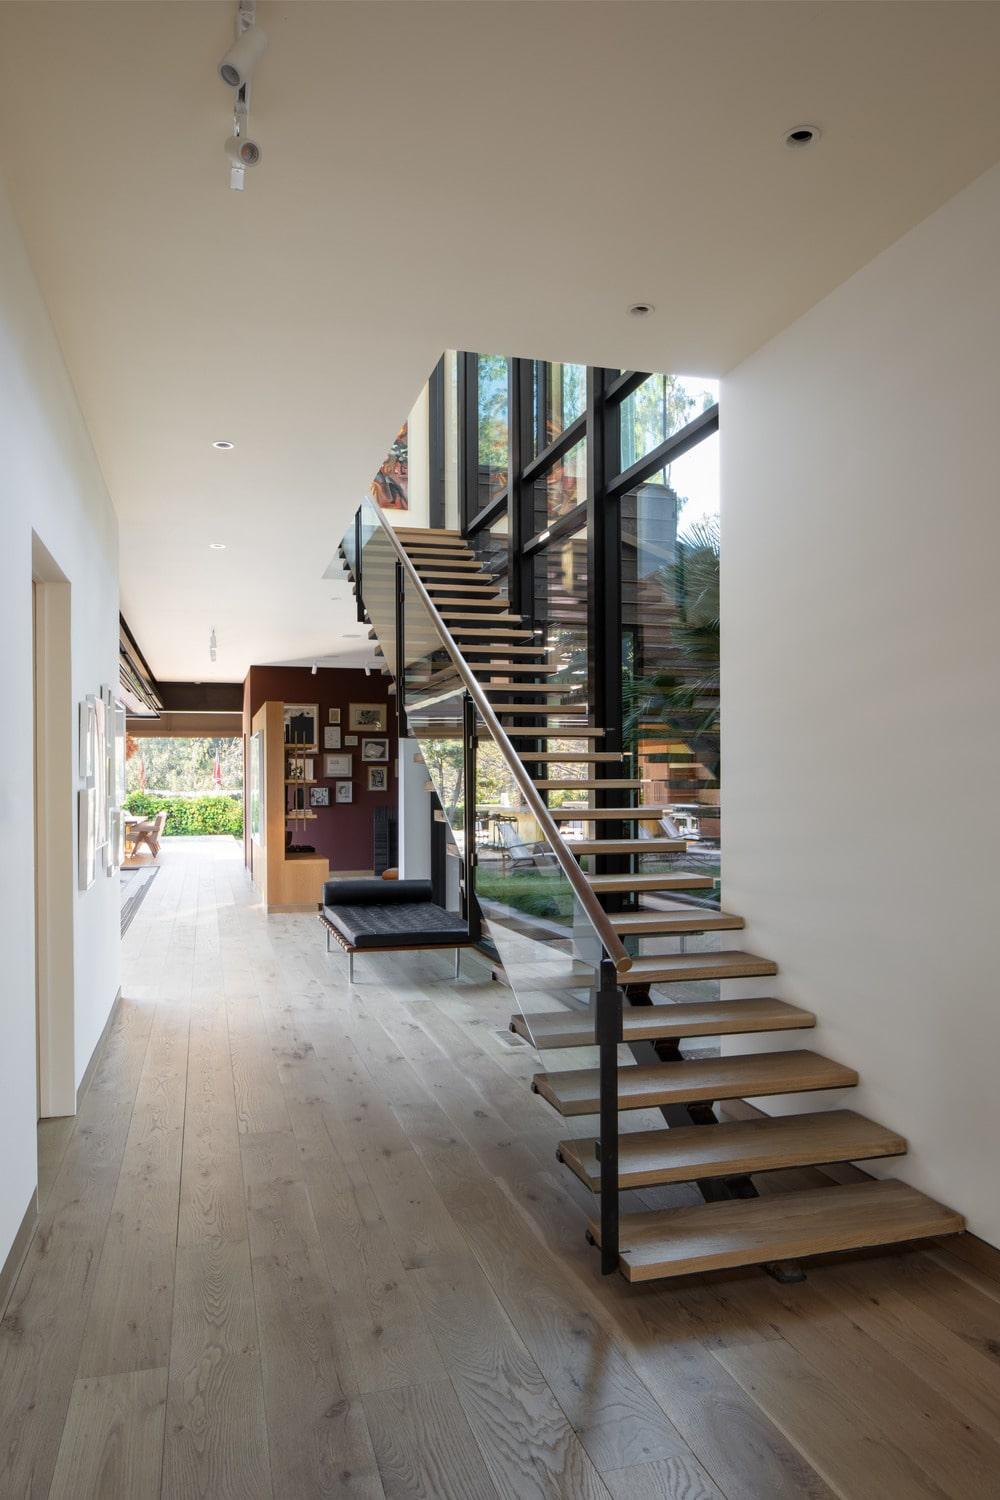 This is the simple foyer with a modern staircase bordered with glass. It has light wooden steps that match well with the hardwood flooring.